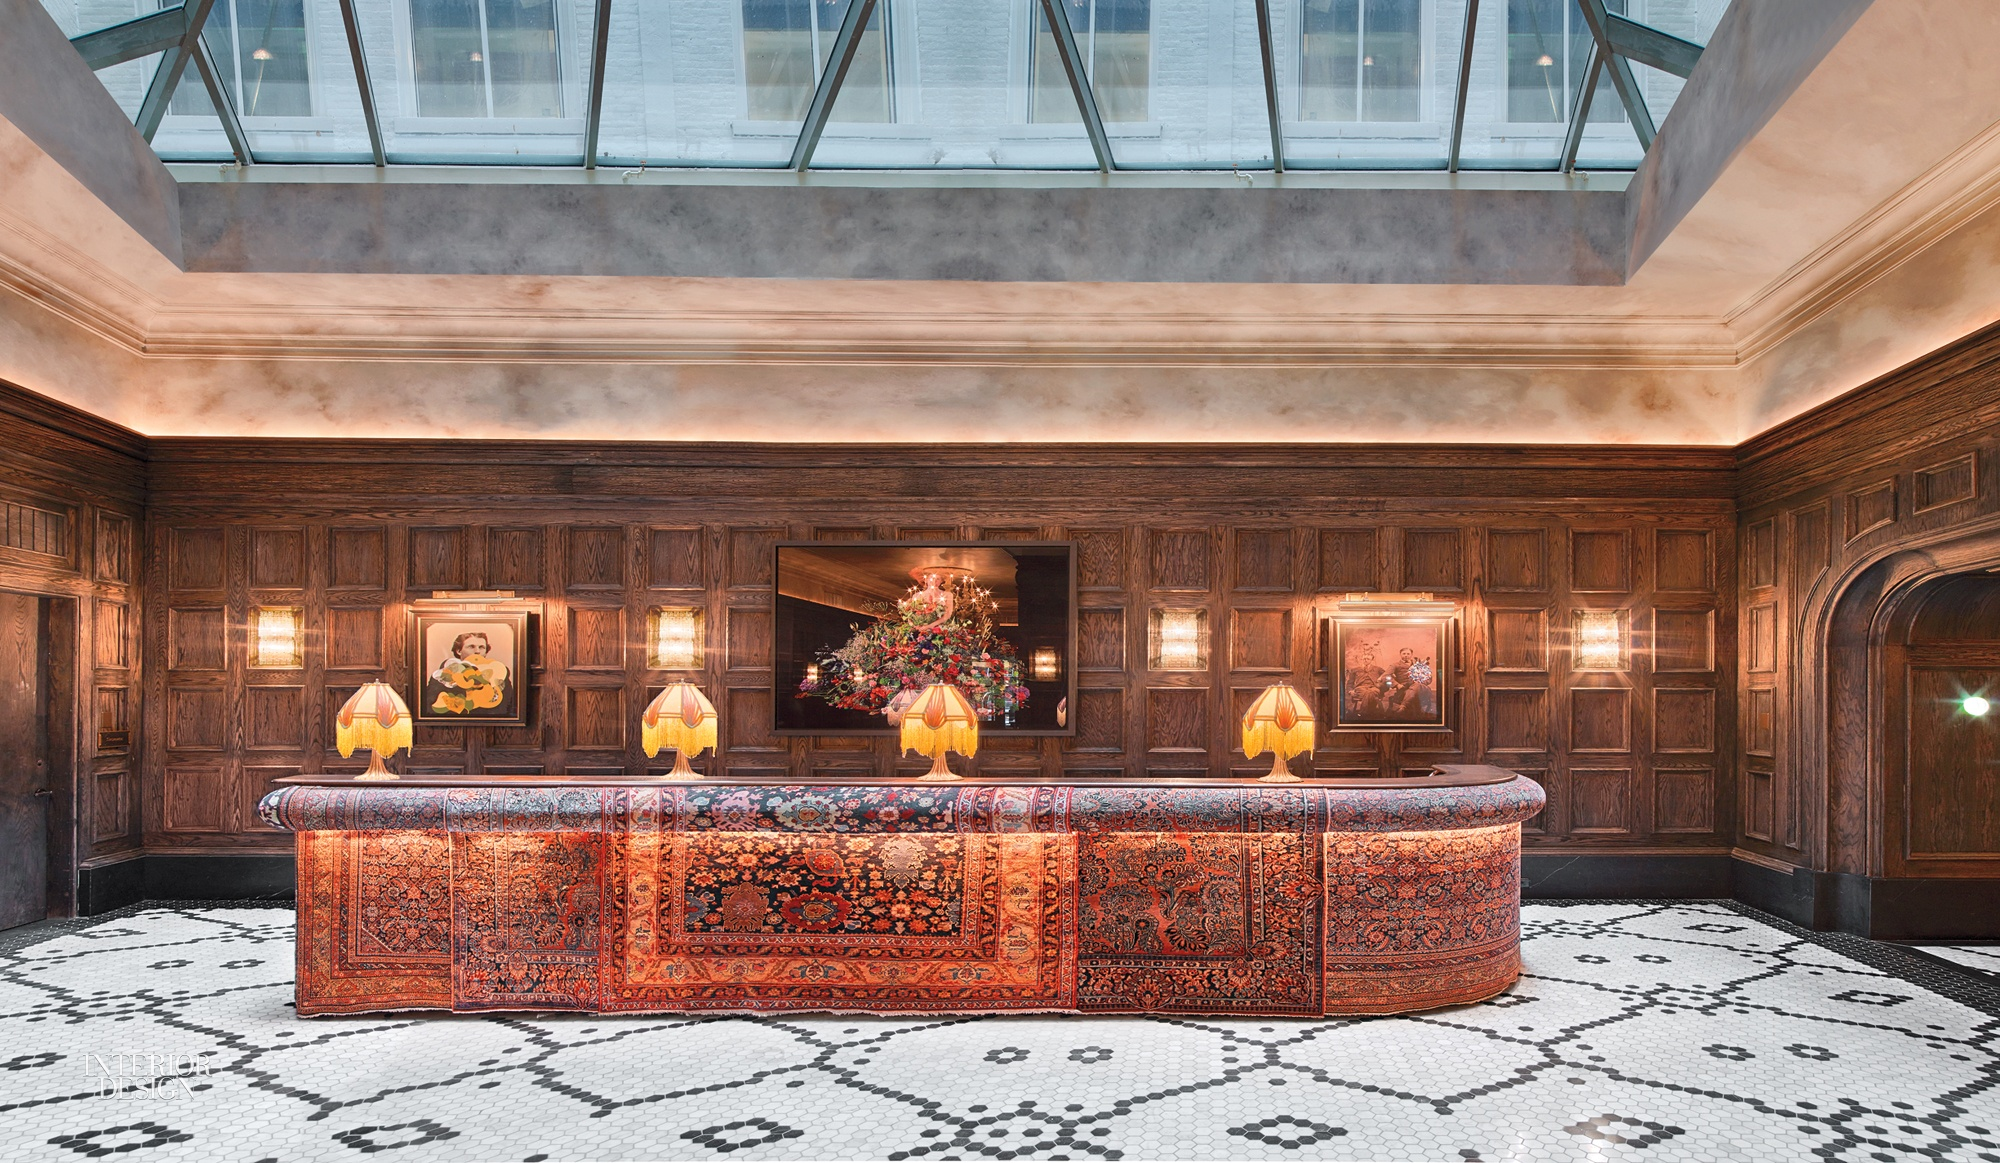 Persian wool rugs upholster the front of the reception desk. Photography by  Eric Laignel.